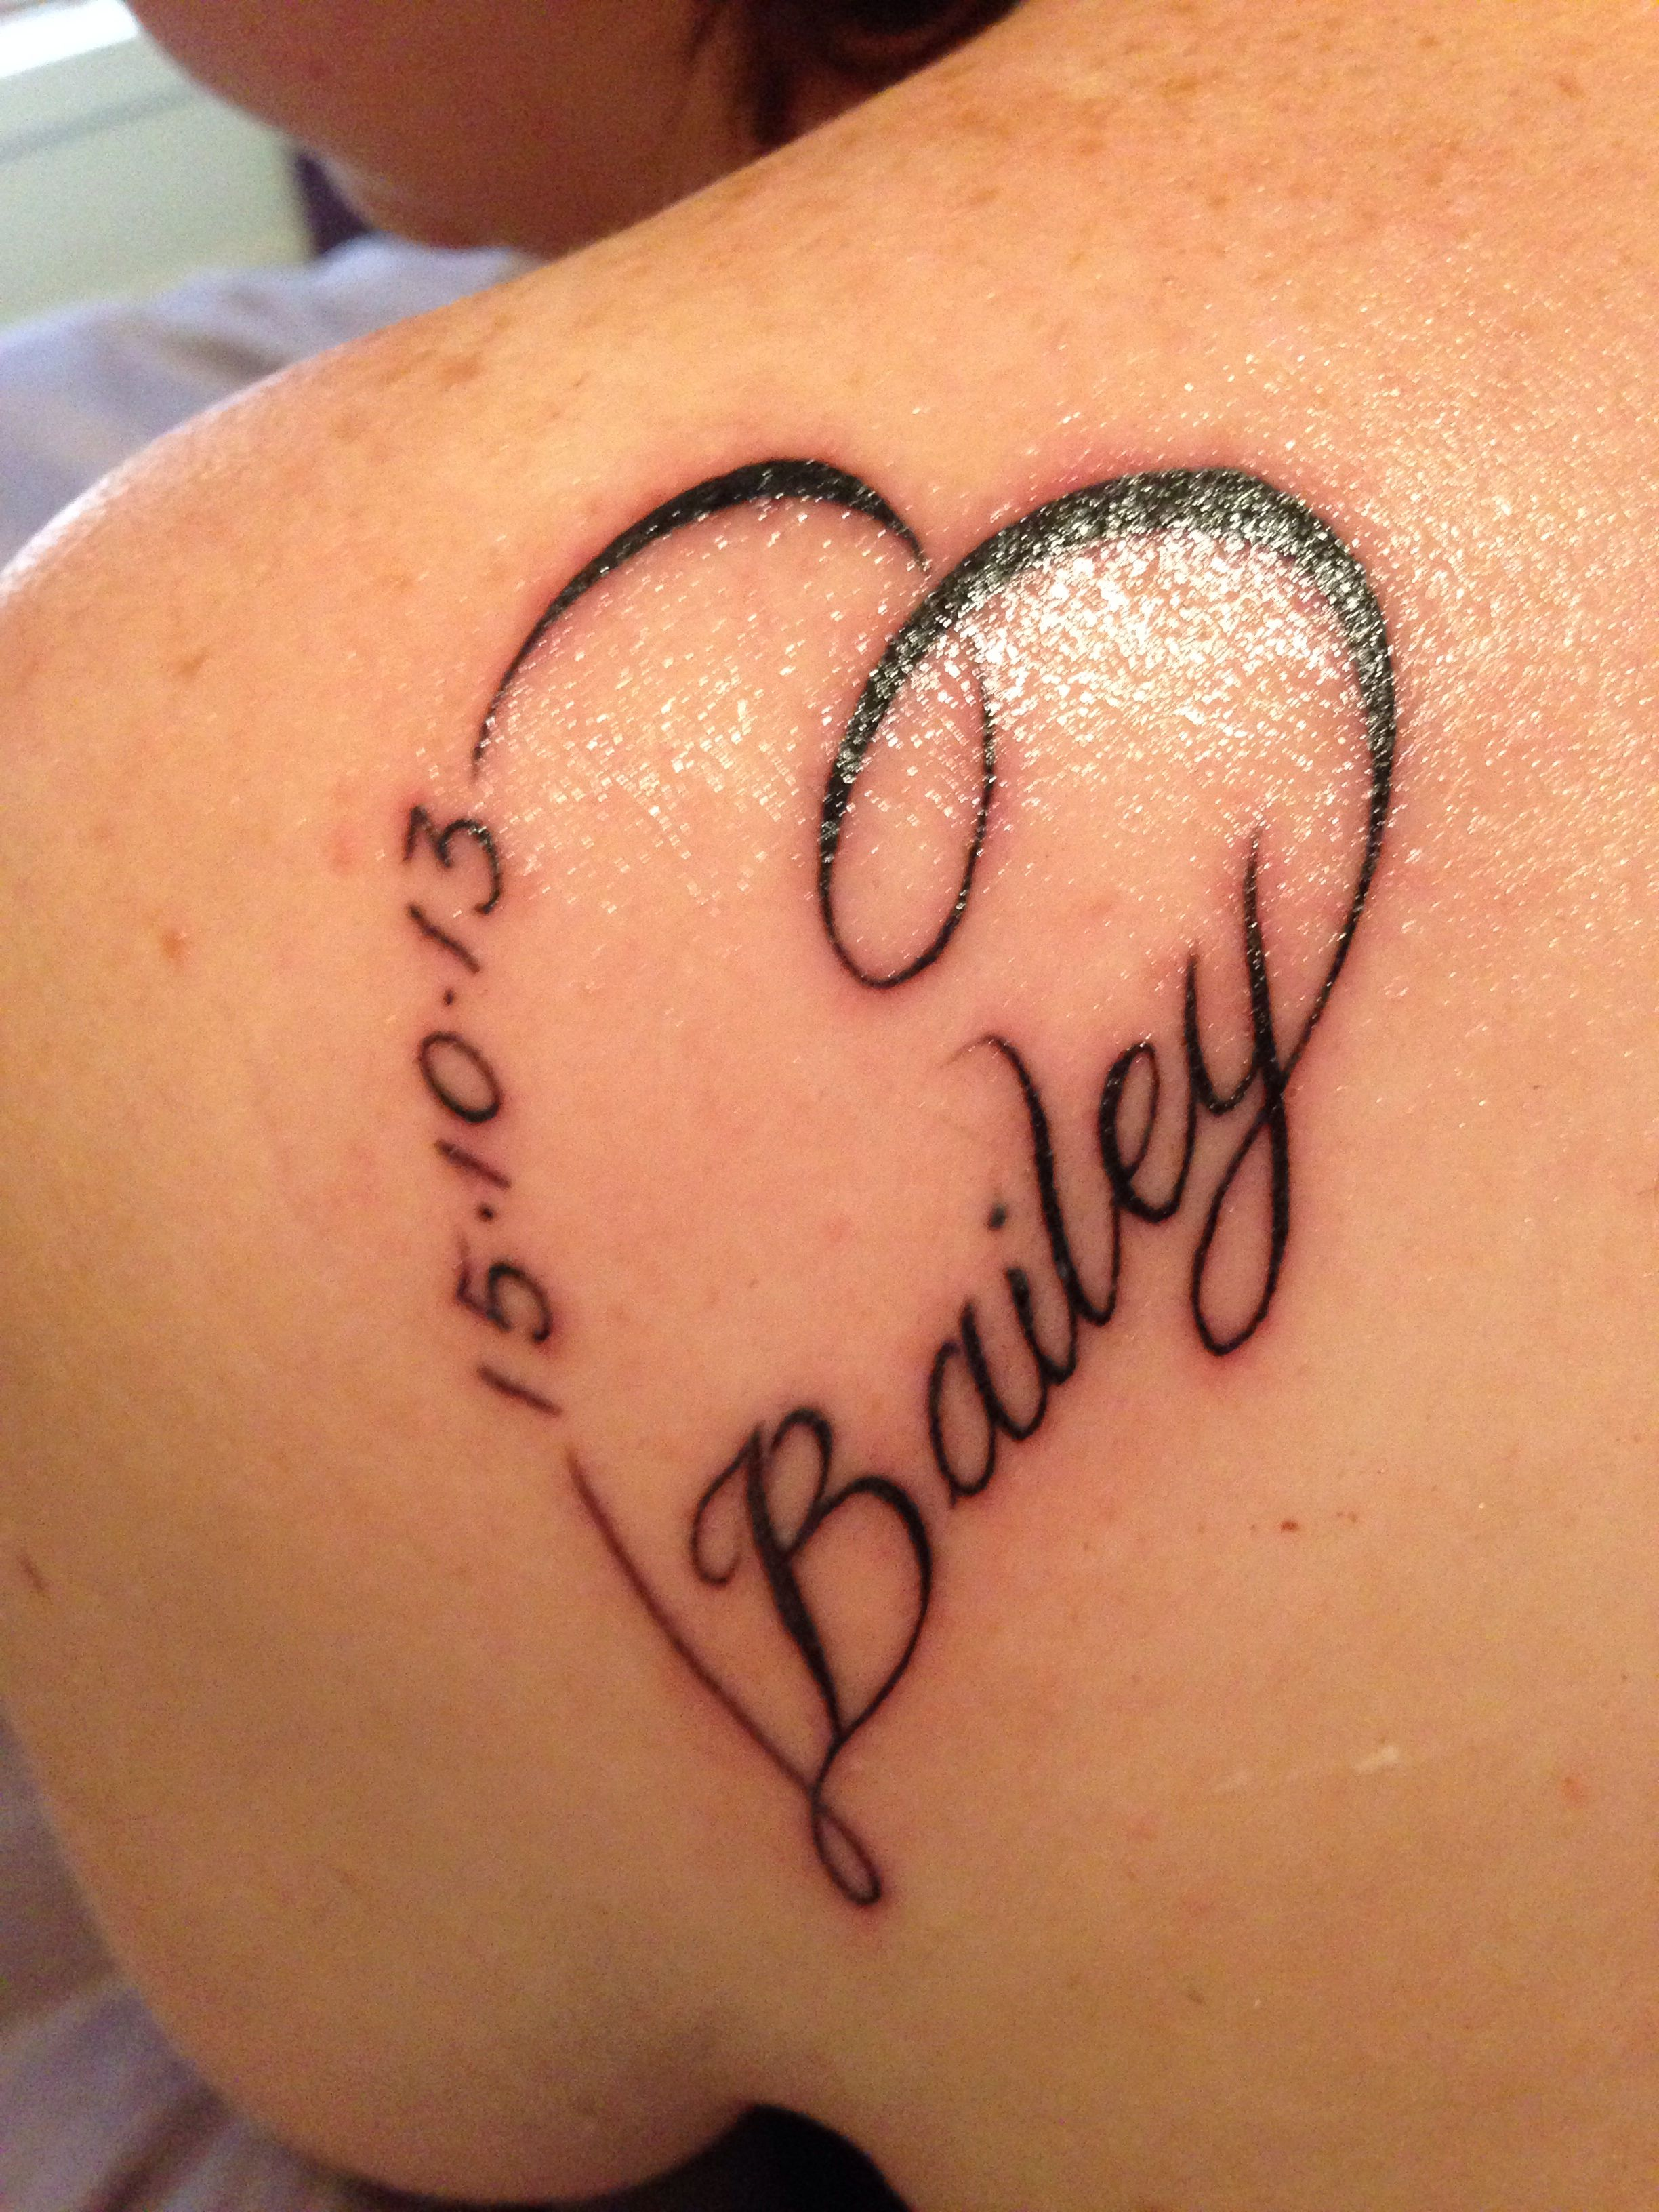 My tattoo for my son Bailey